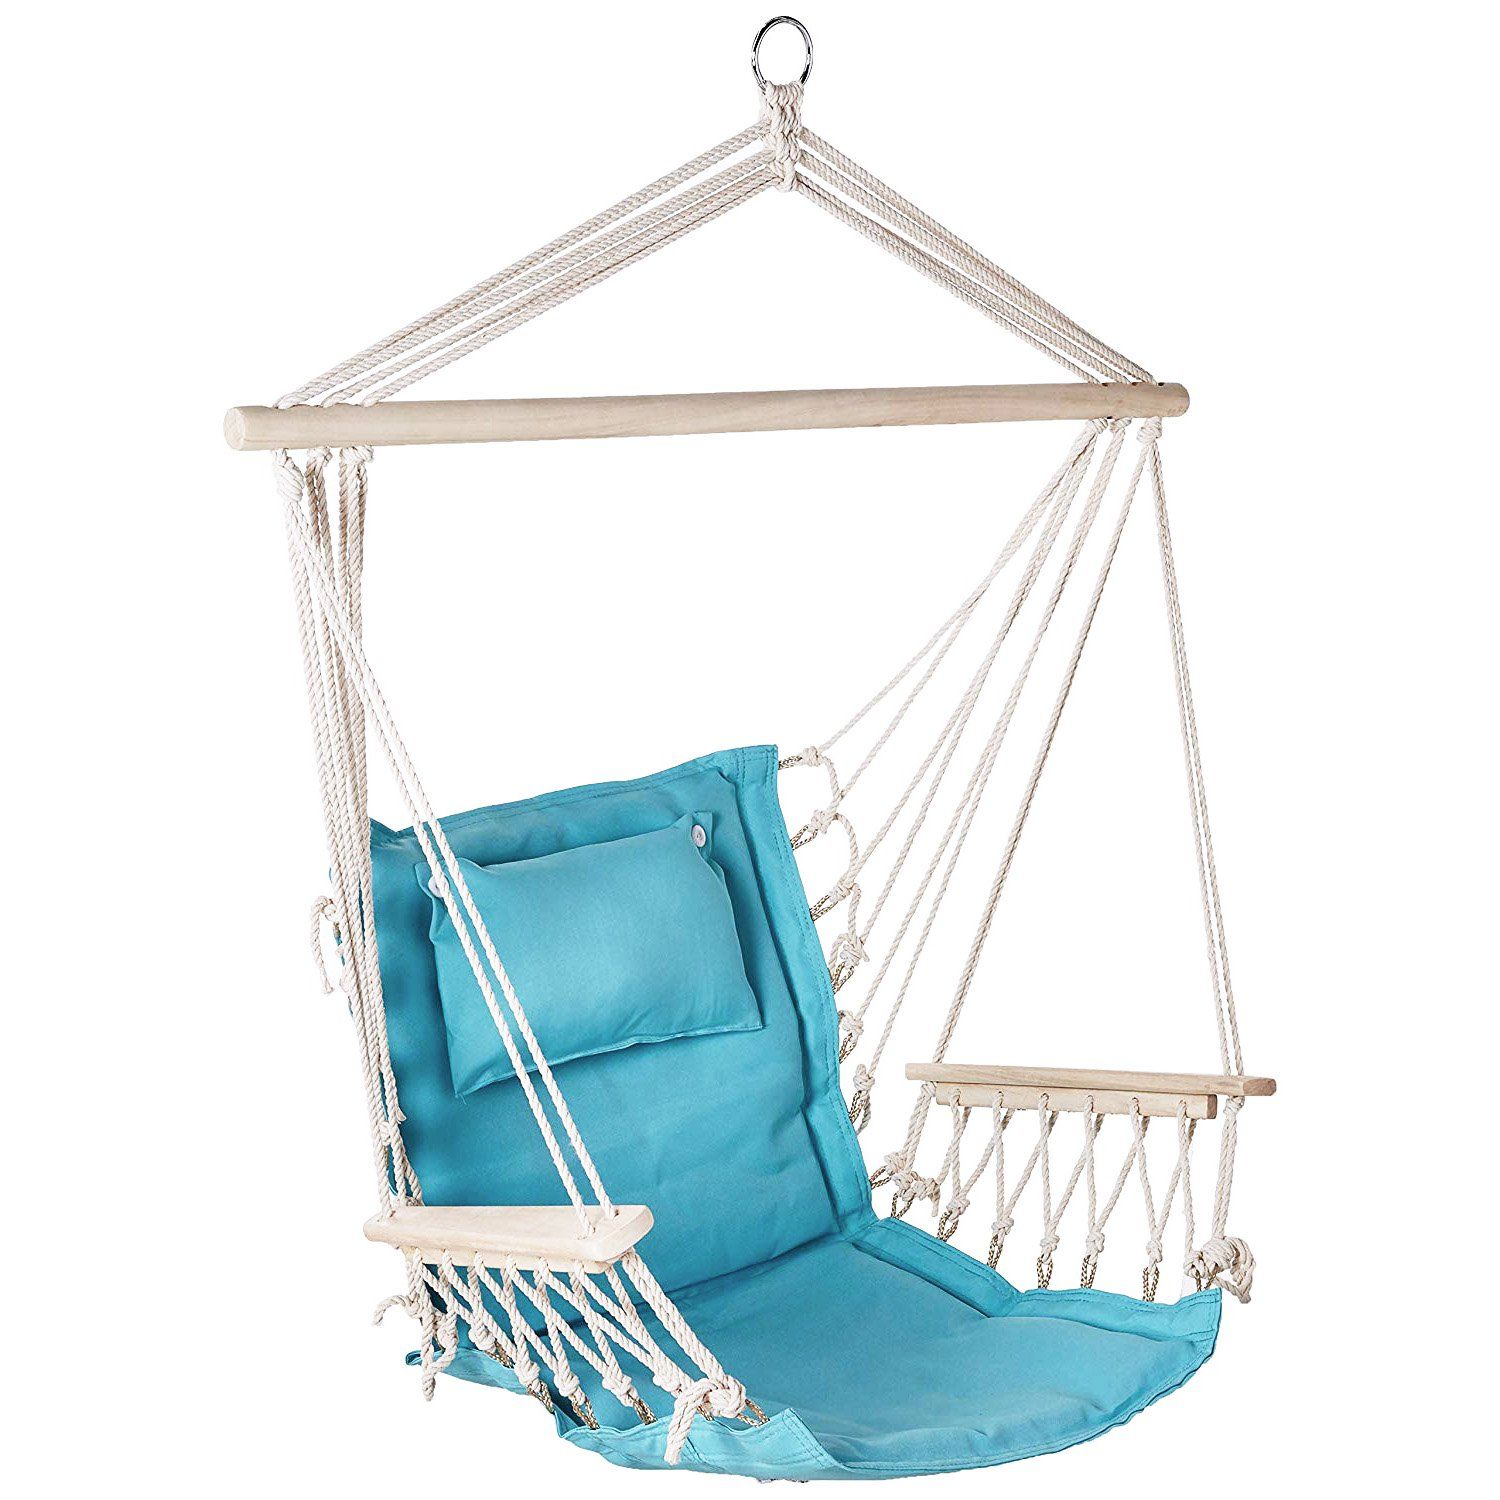 Patio & Garden in 2020 Hammock swing chair, Hanging